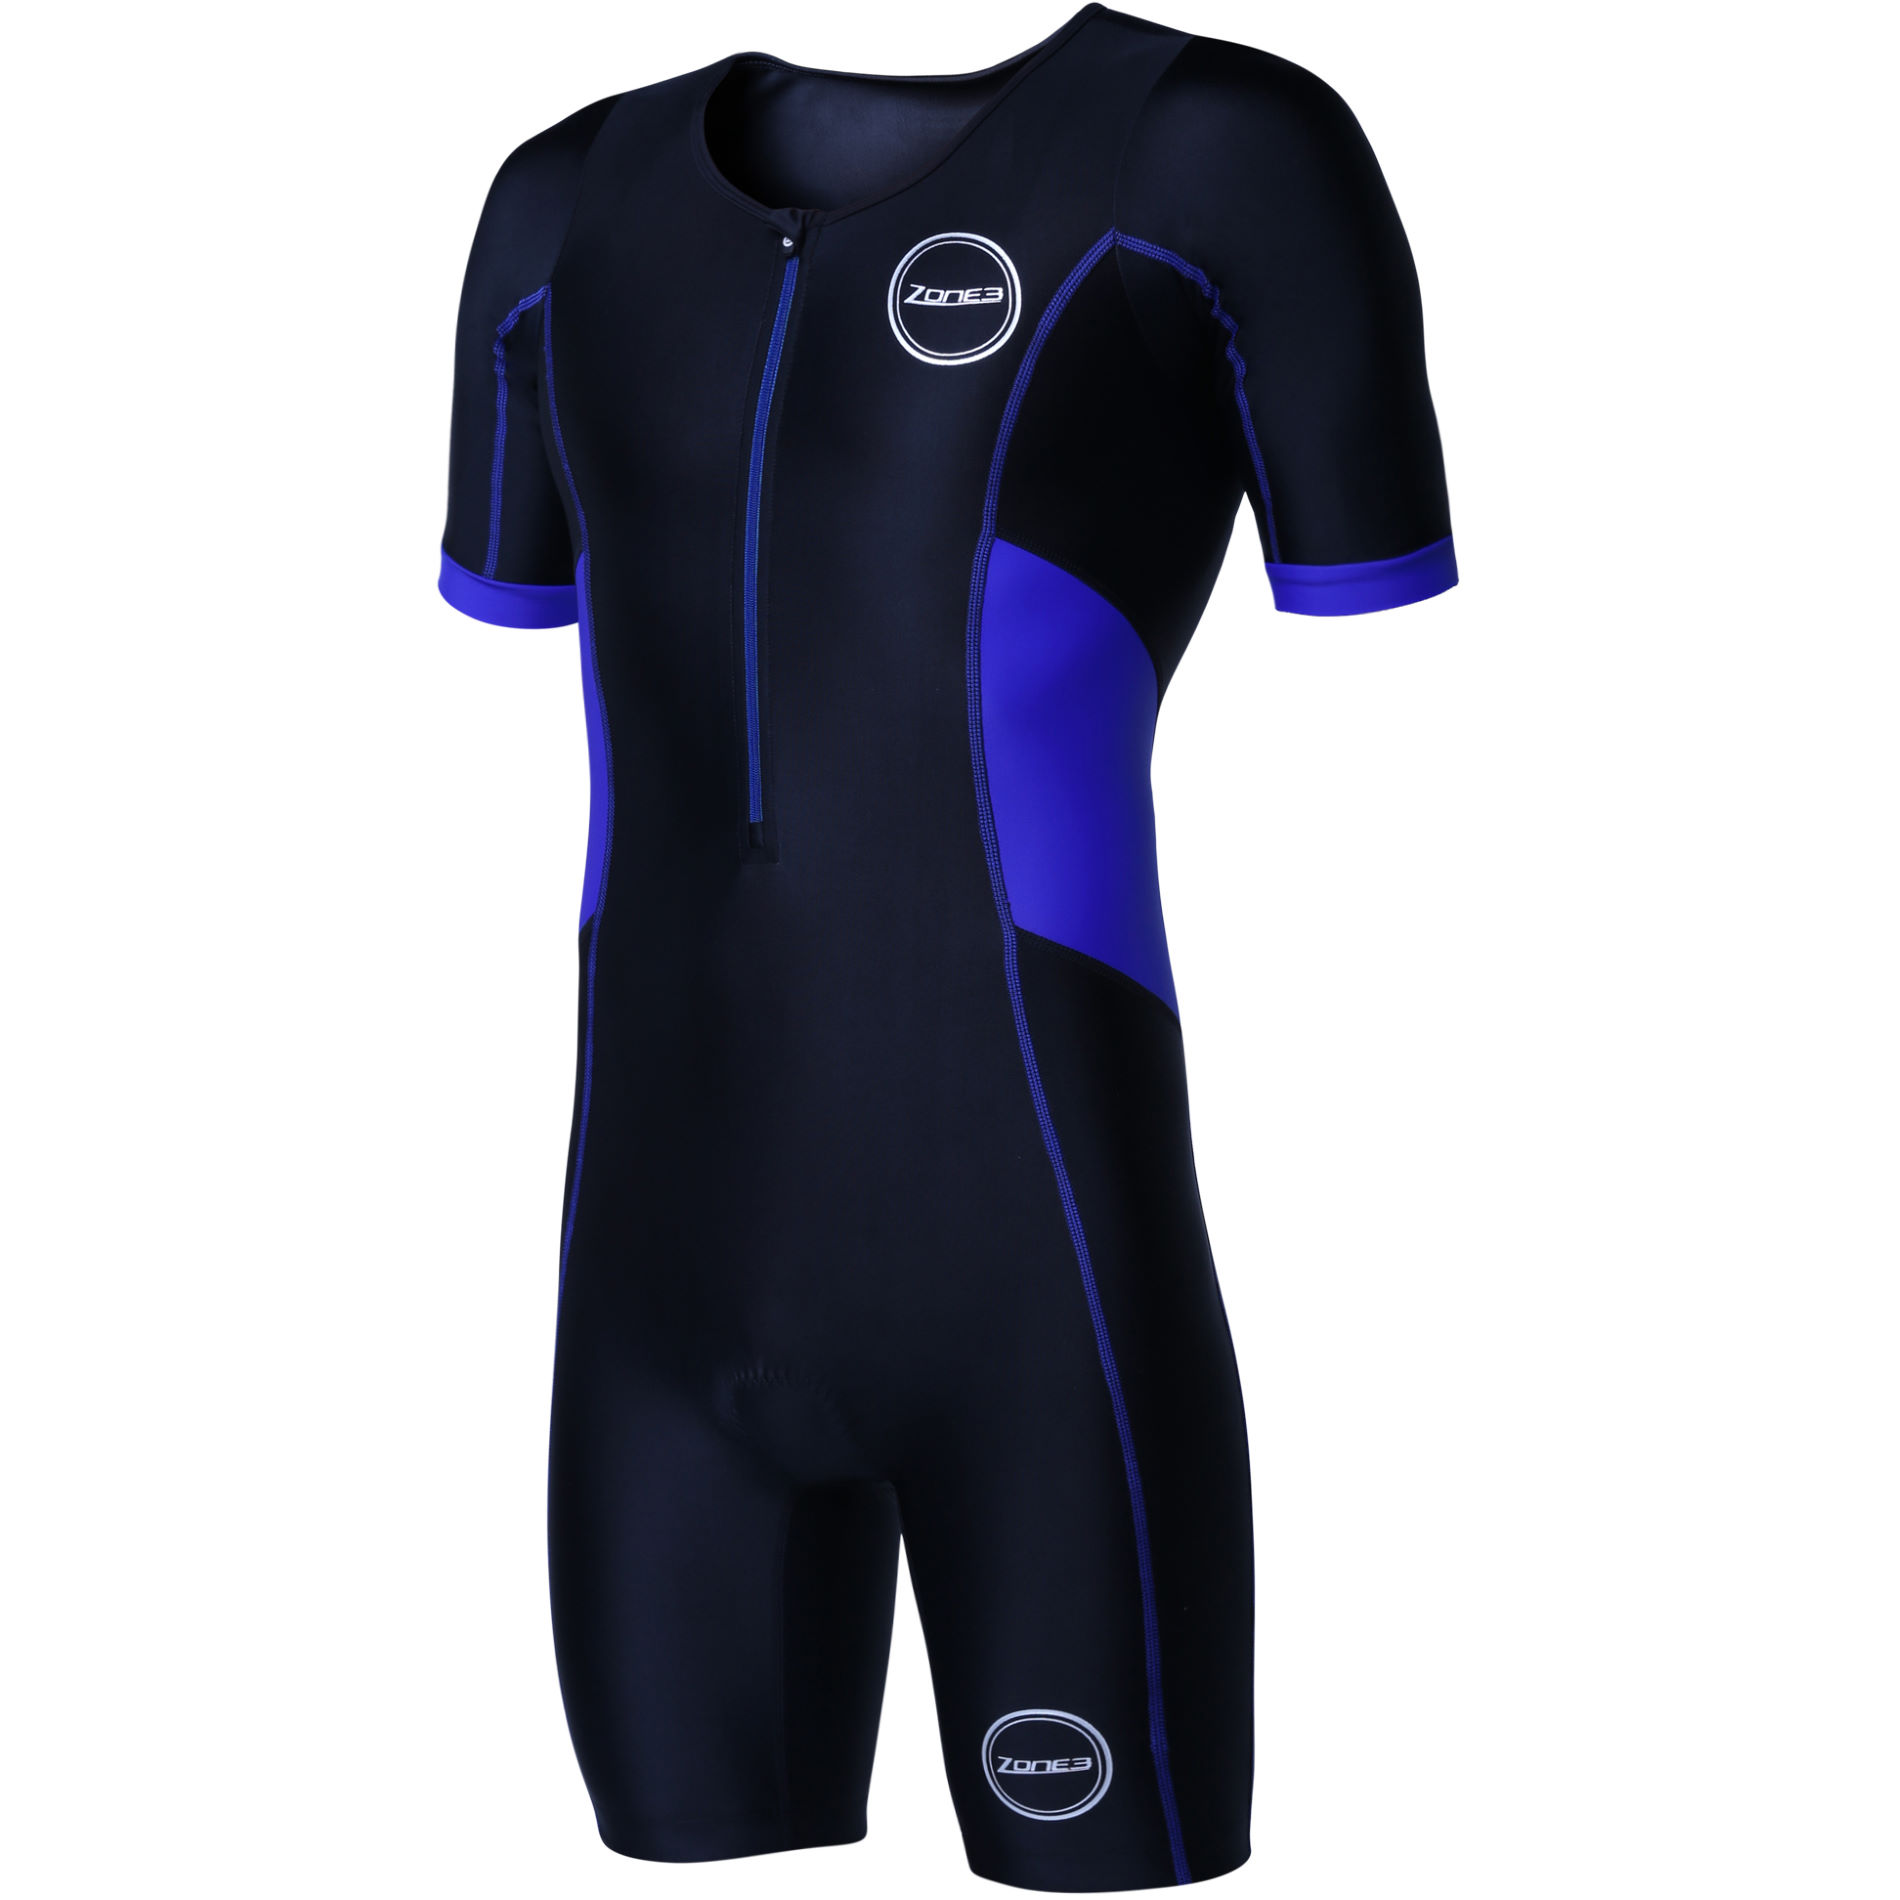 b4be355a970 Wiggle Cycle To Work | Zone3 Mens Activate Short Sleeve Tri Suit ...